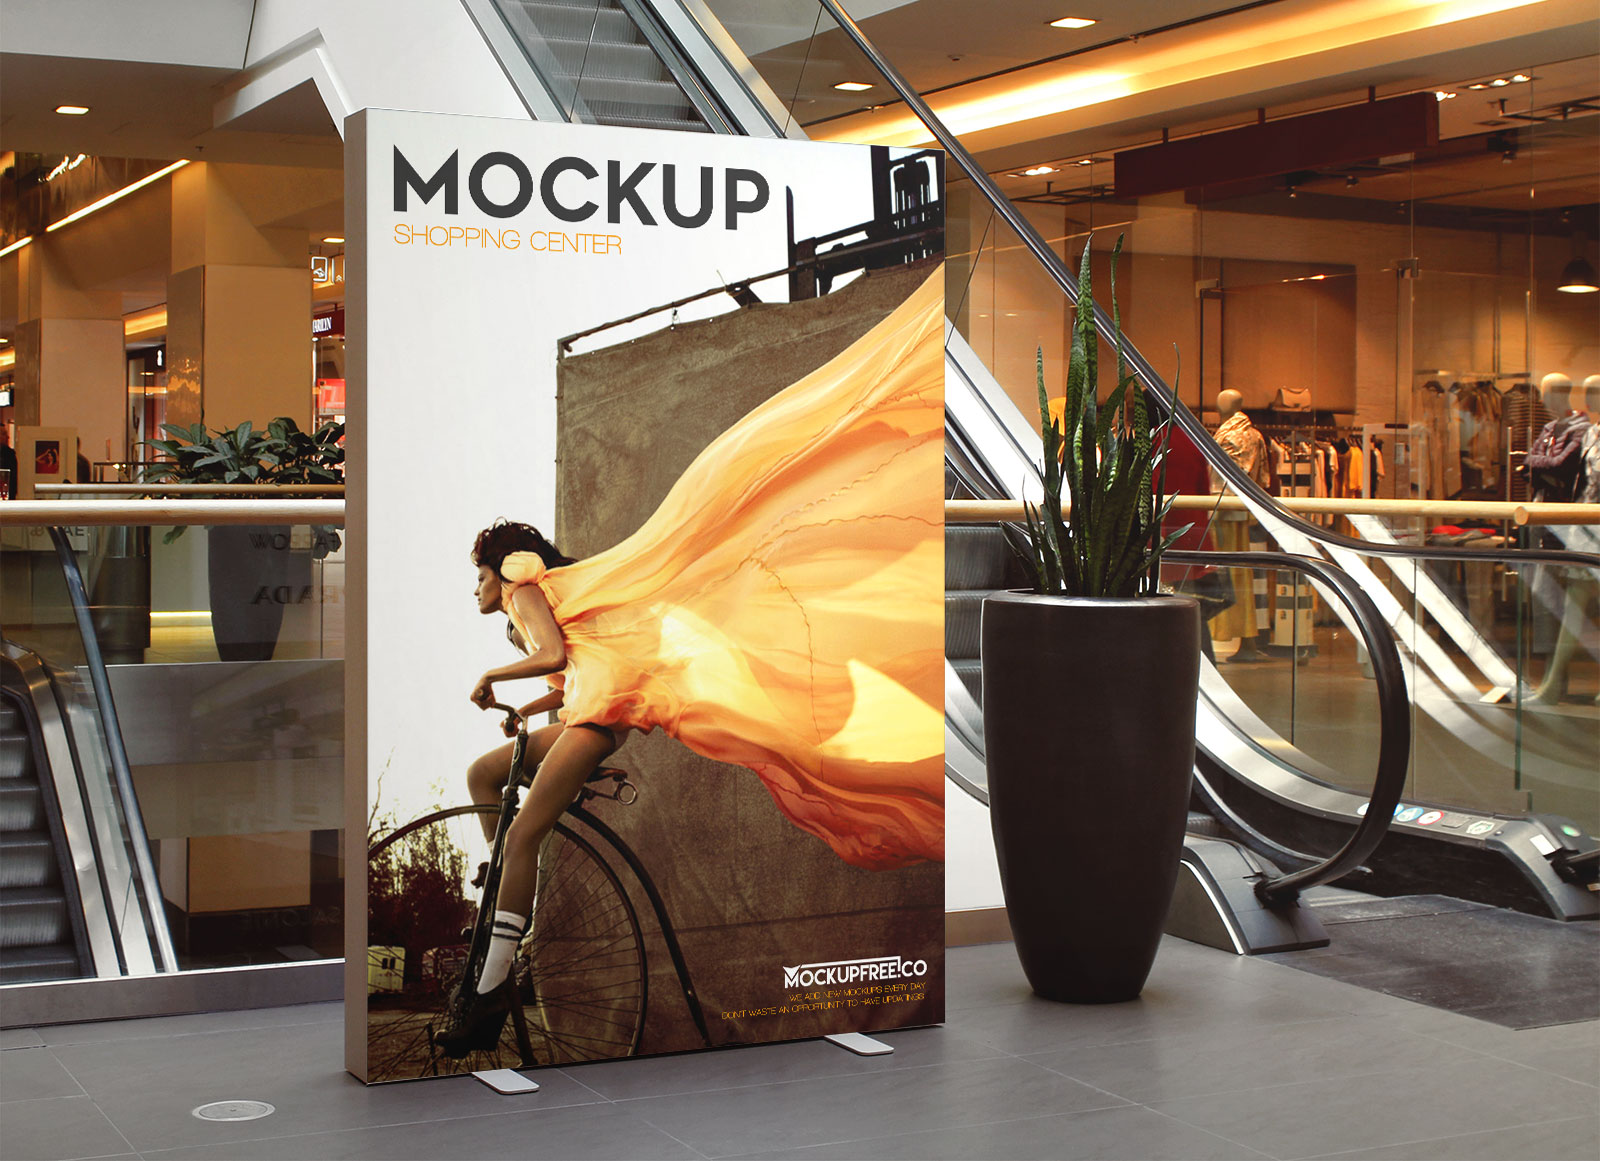 Free-indoor-advertising-shopping-center-mockup-psd